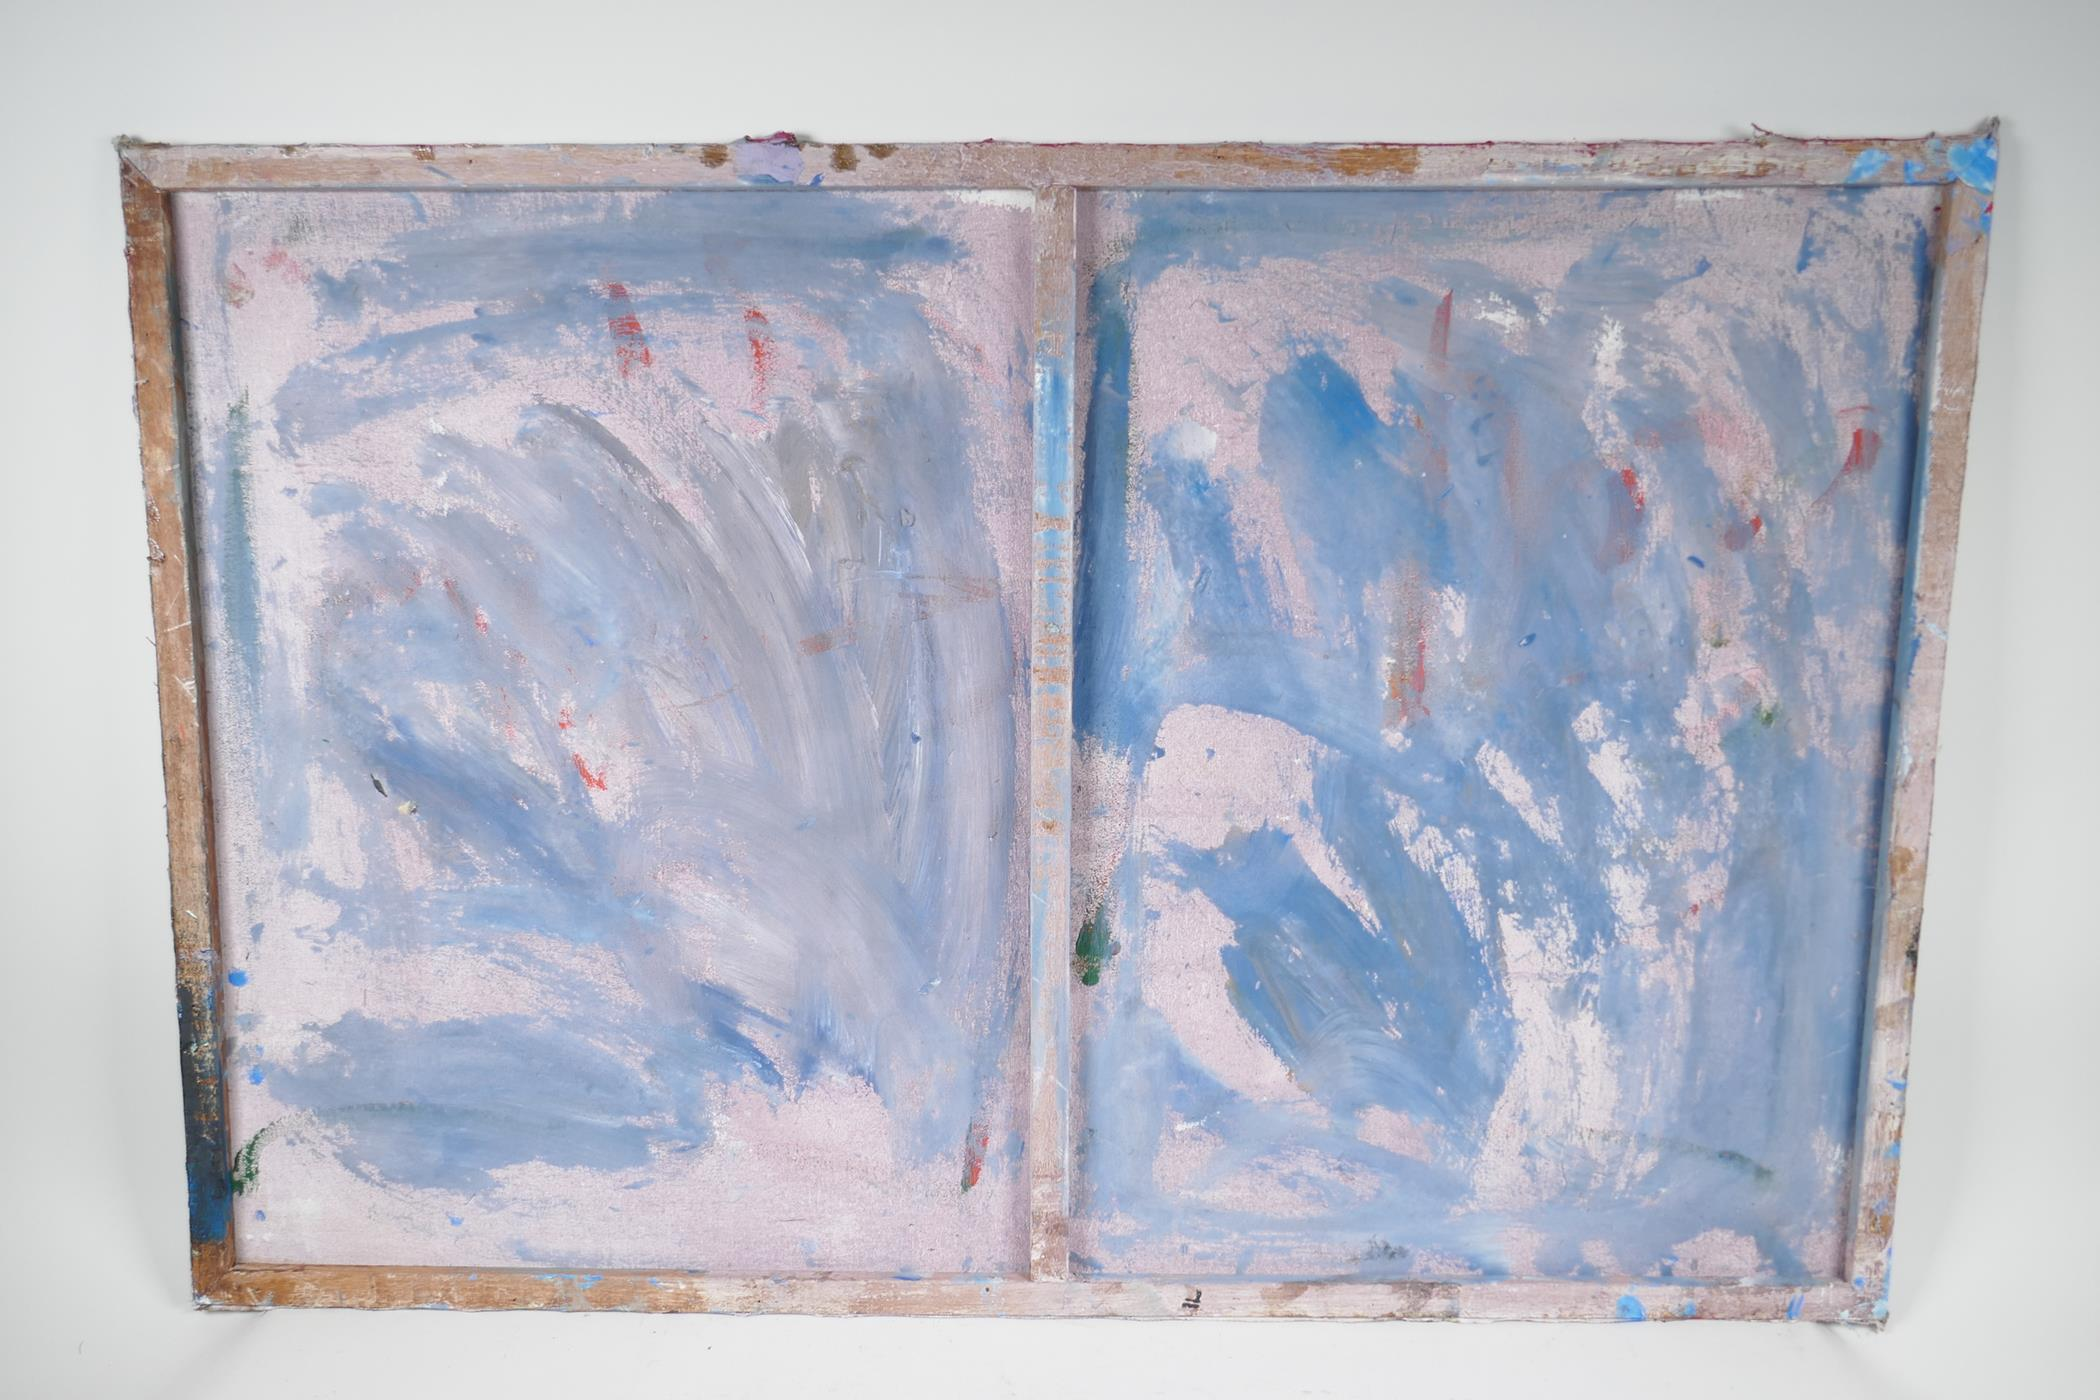 """After Nicolas de Stael, abstract still life of vases, impasto oil on canvas,unframed, 36"""" x 24"""" - Image 3 of 4"""